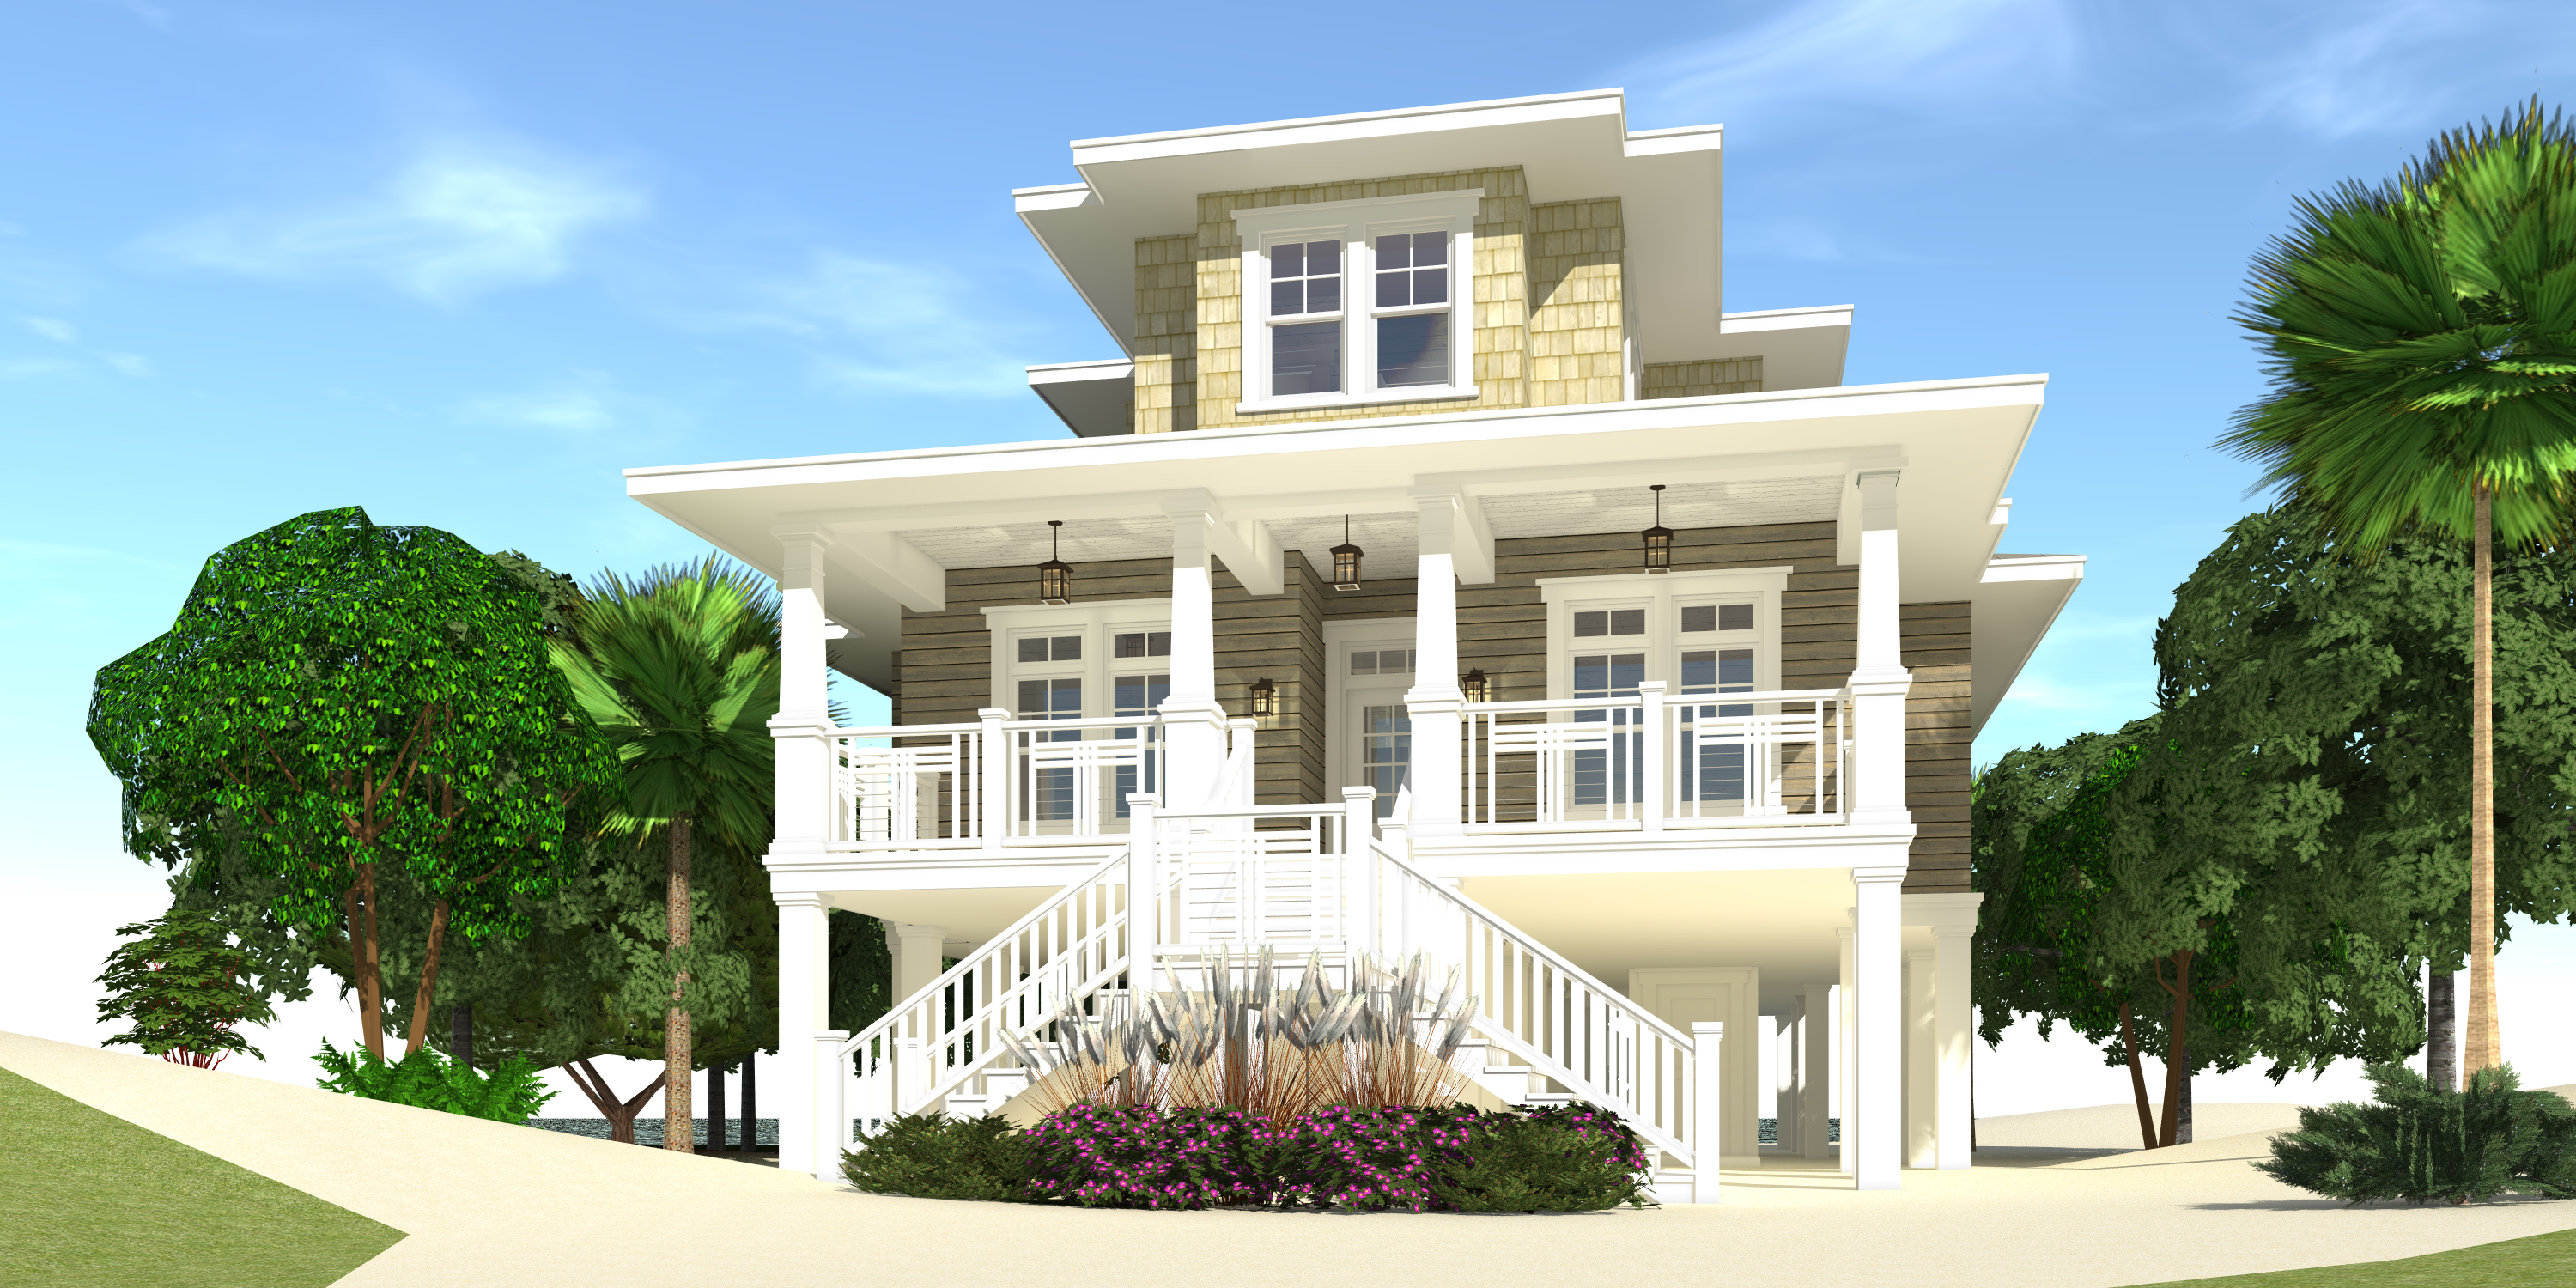 fenton house plan - Beach Home Plans